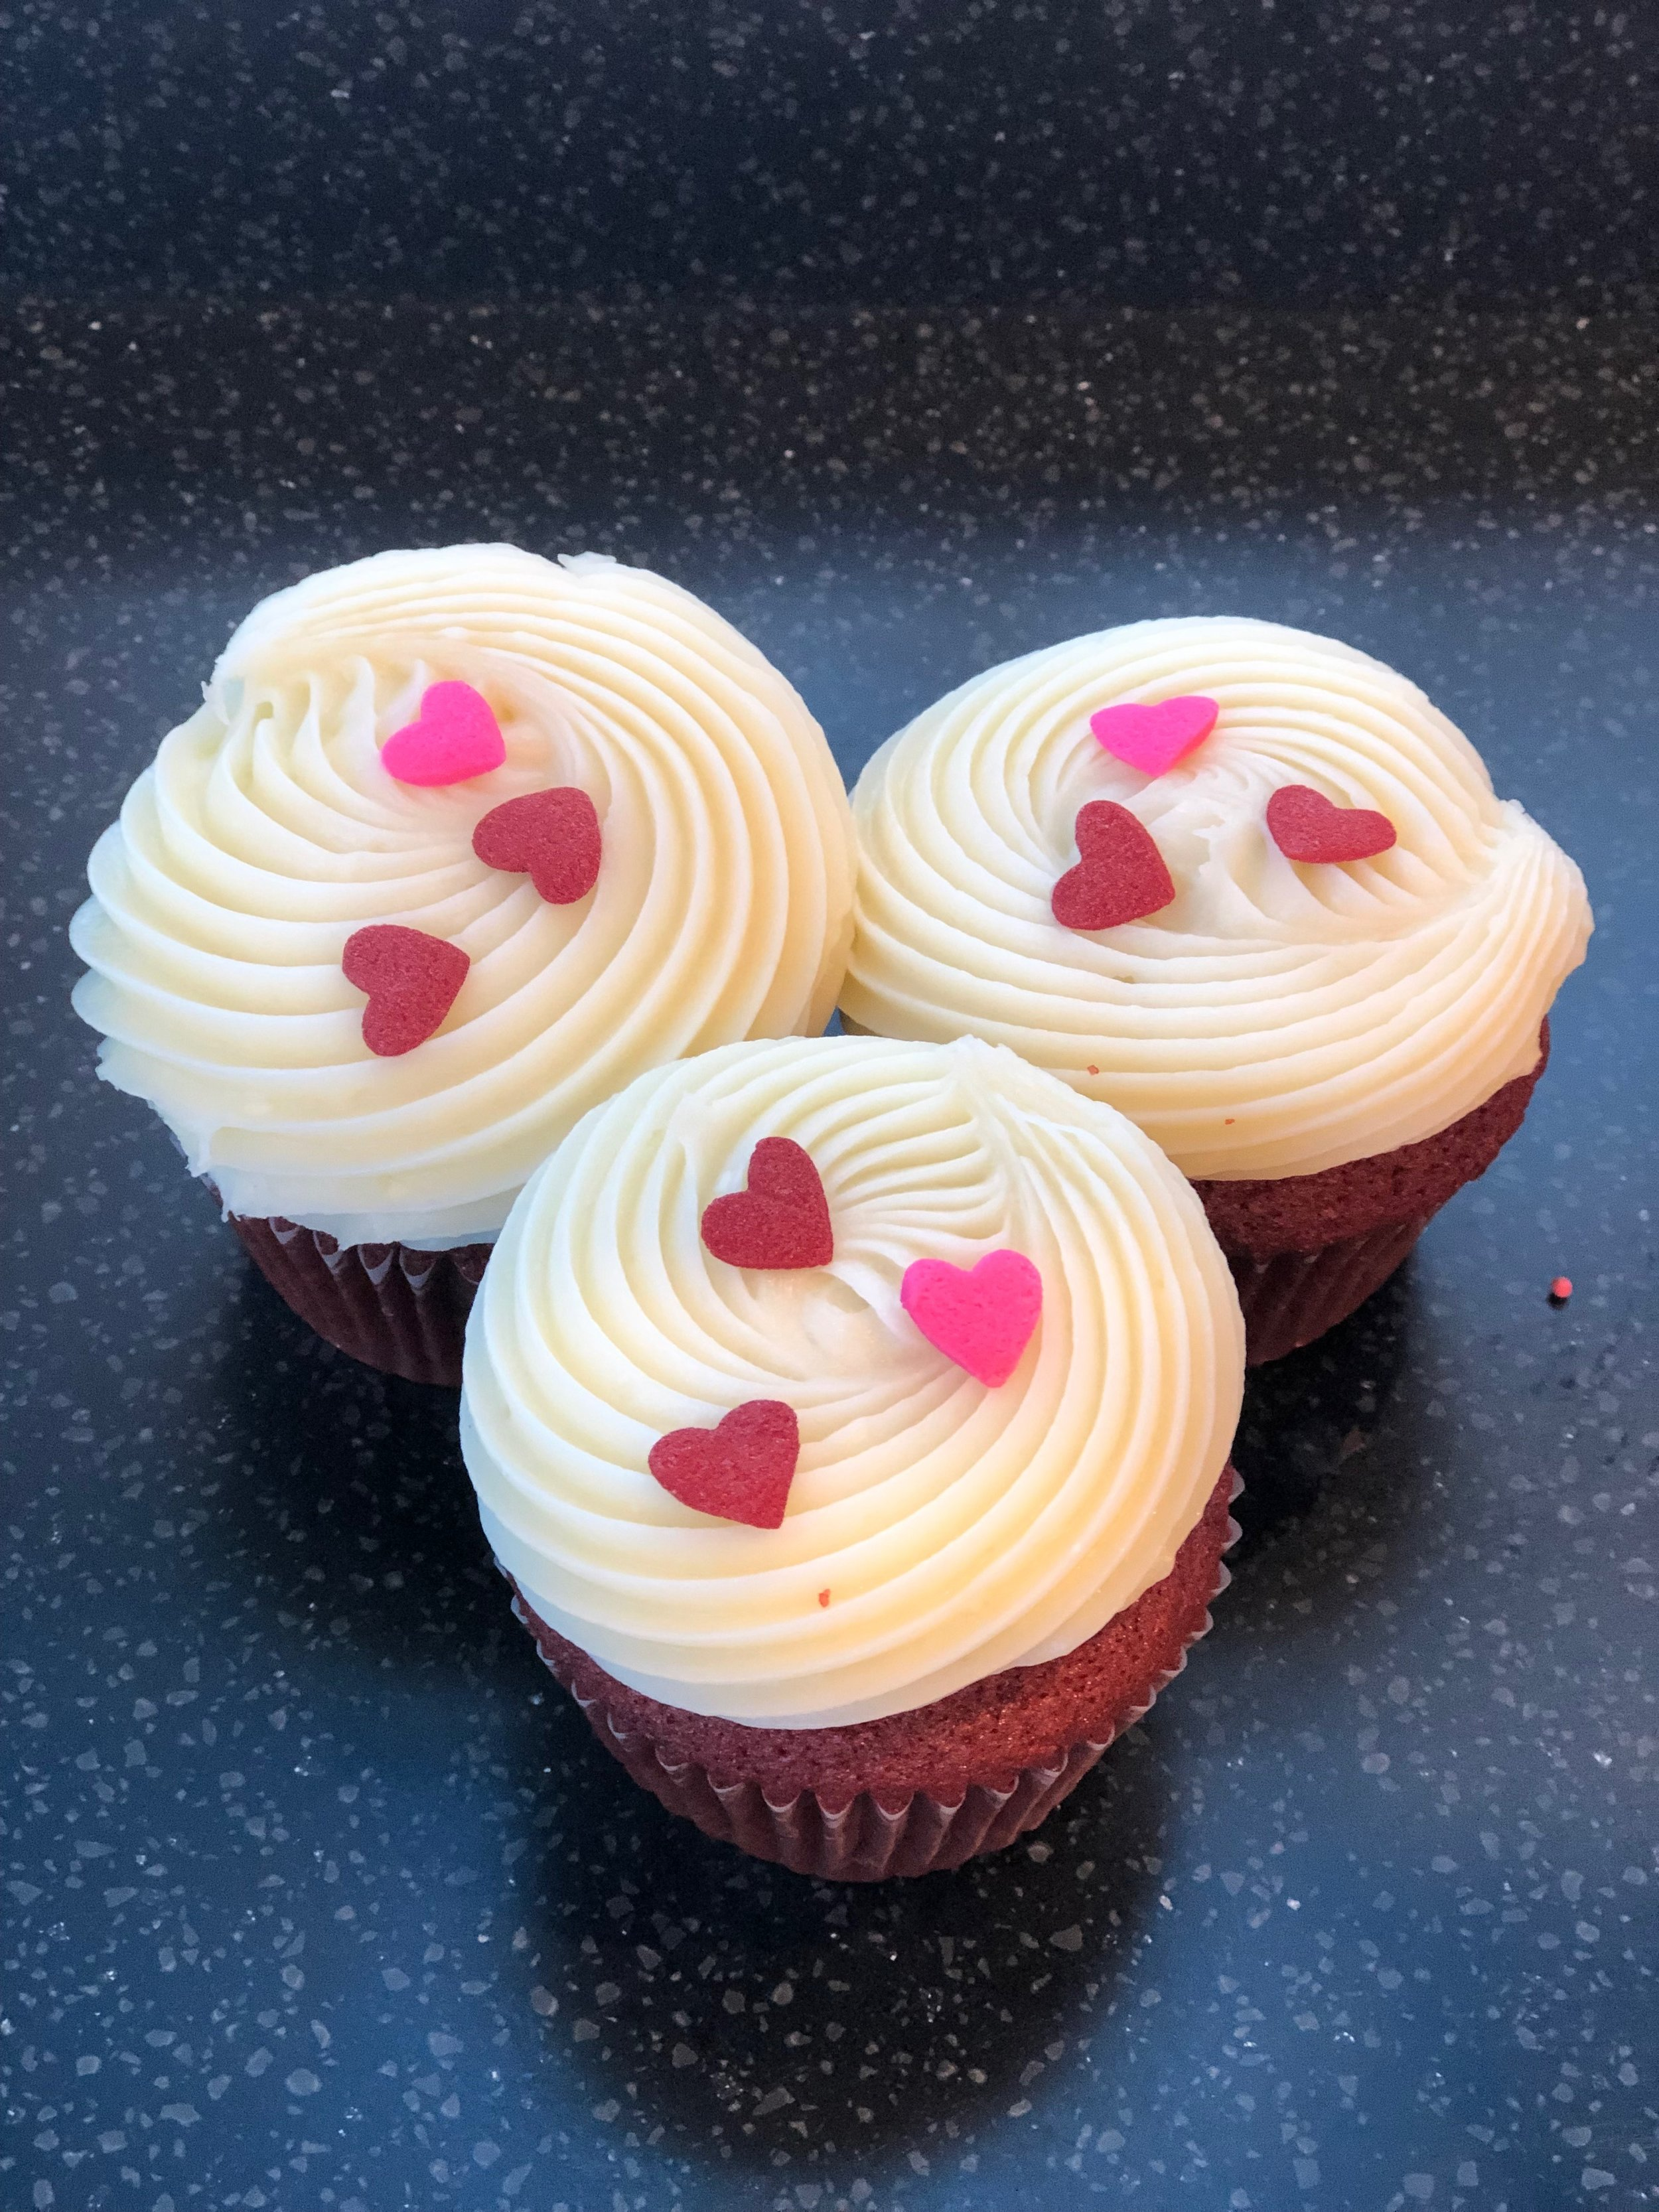 Red velvet cupcakes with hearts.JPG